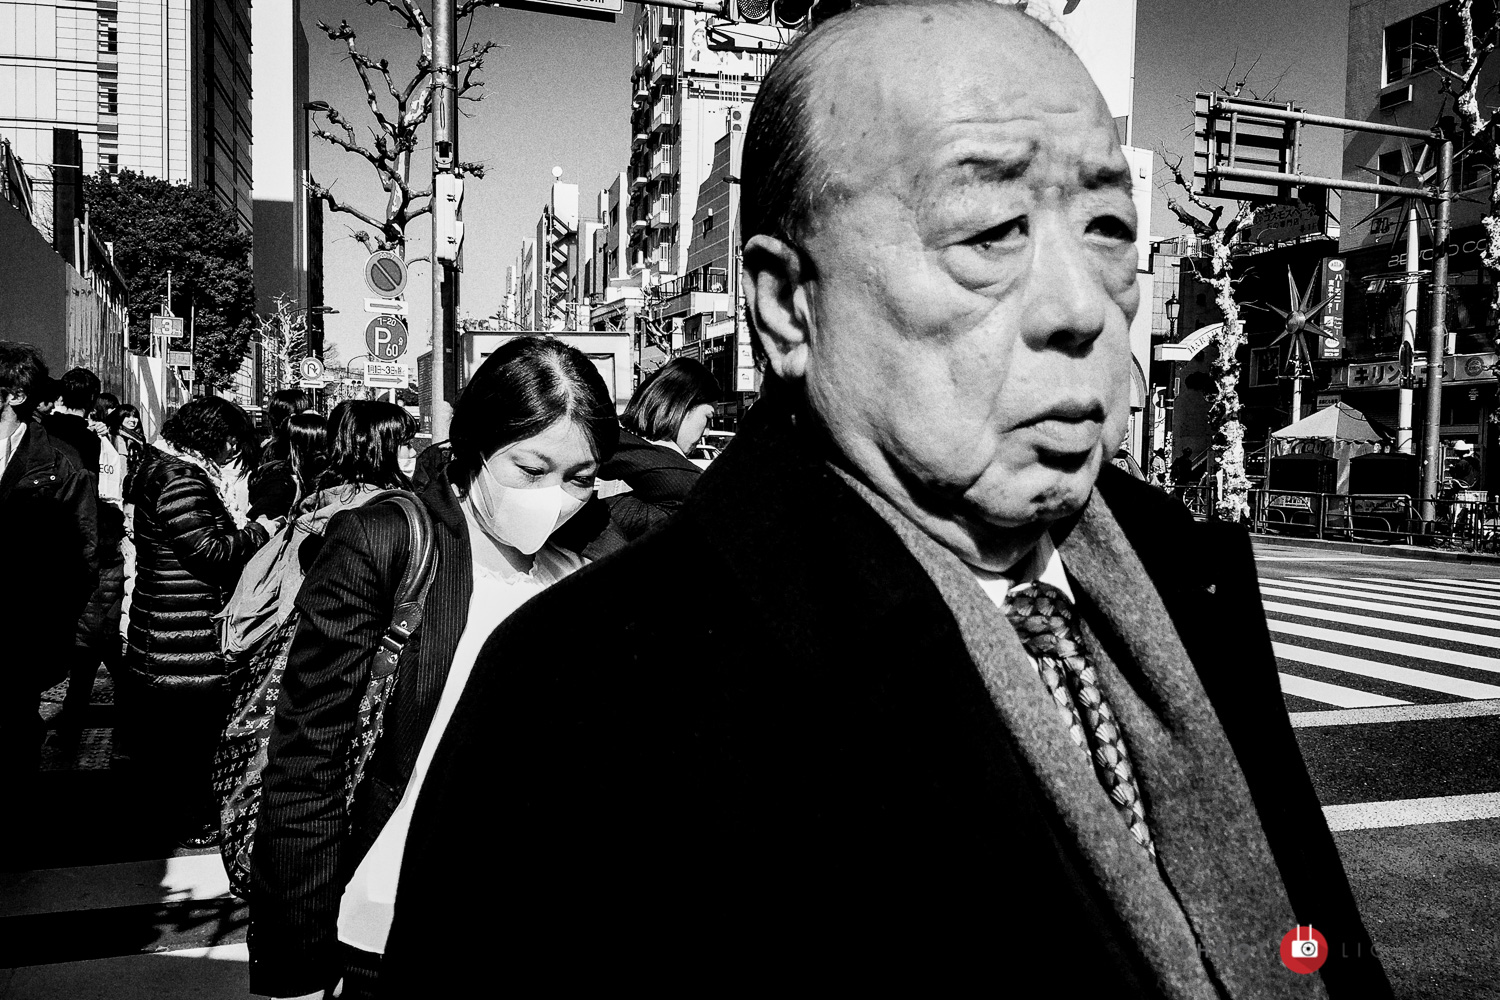 Shinjuku, Tokyo - iPhone 6 Plus, ISO 32, f/2.2, 1/2000 sec. Edited in Lightroom and Silver Efex Pro 2.